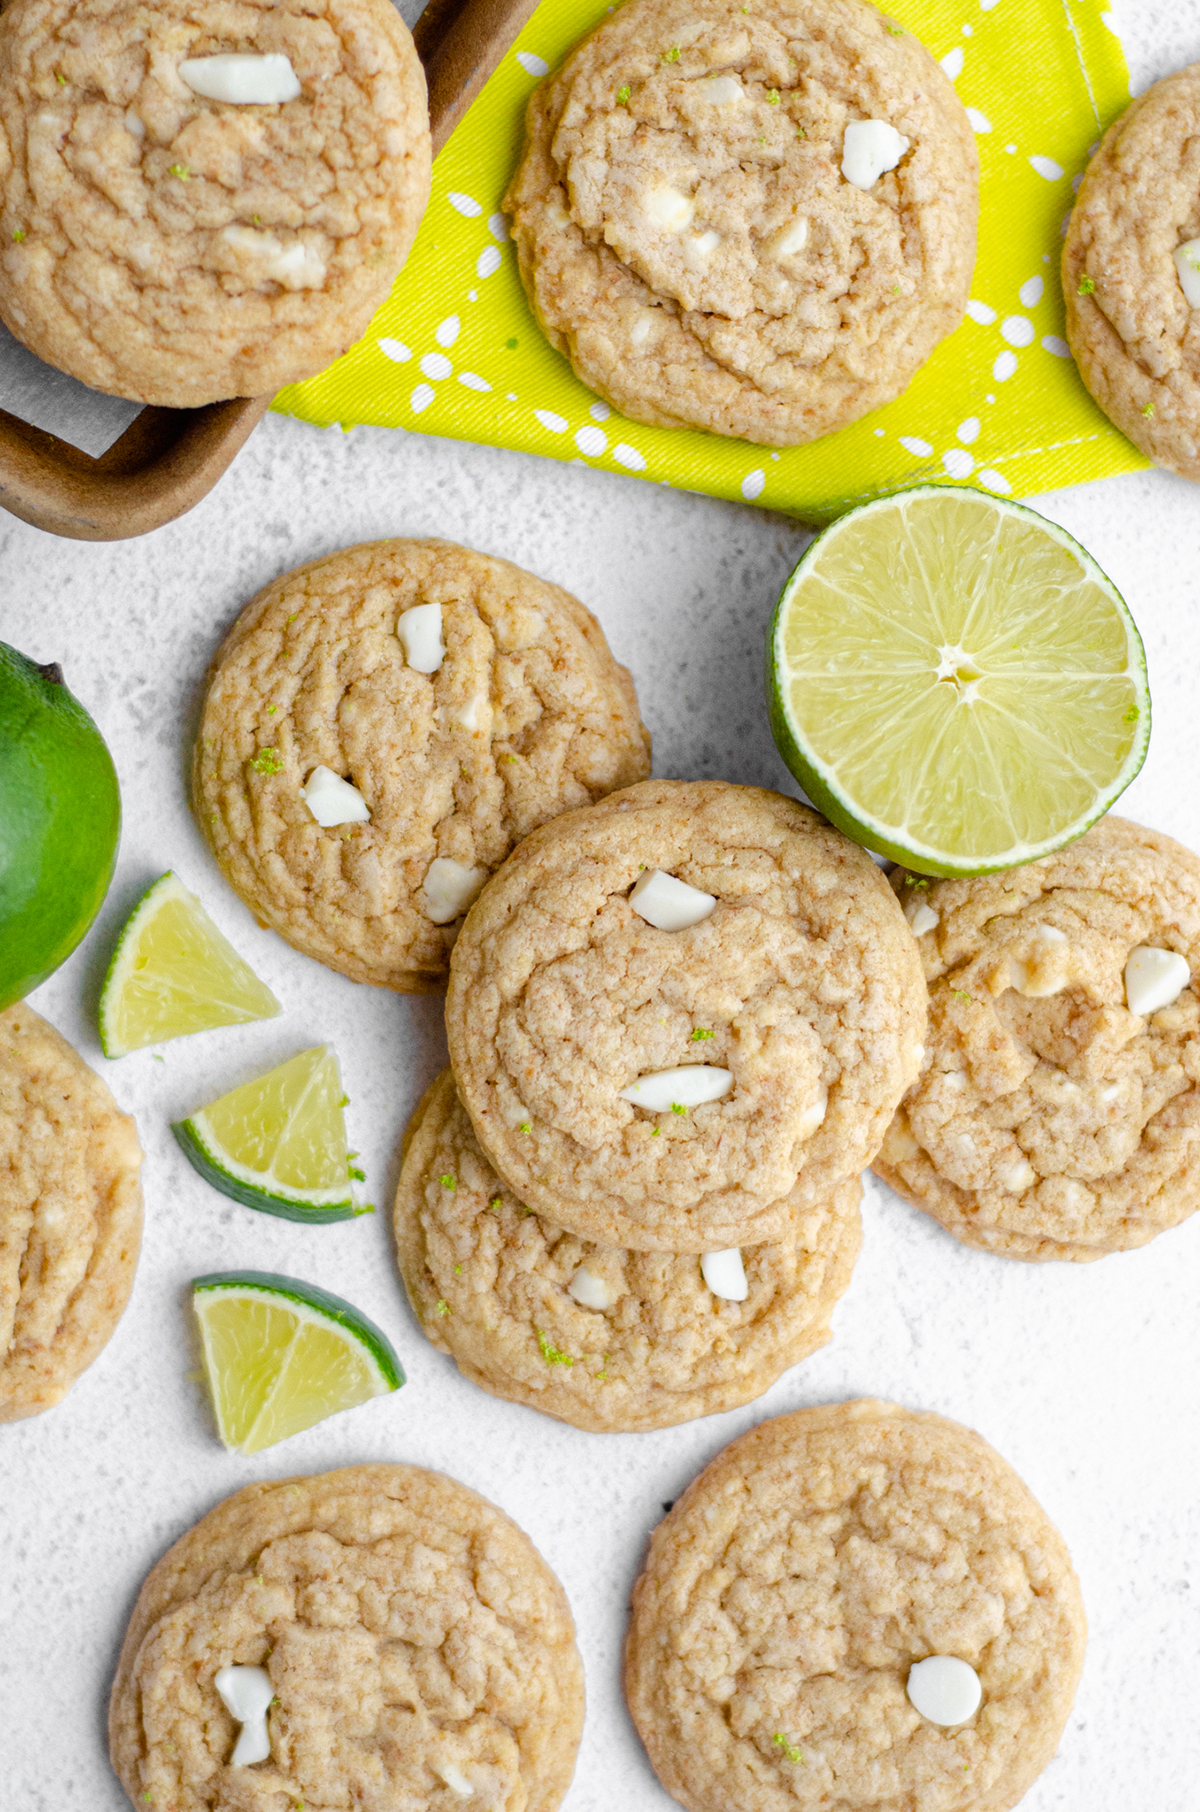 aerial photo of key lime cookies on a white surface with slices of lime around them